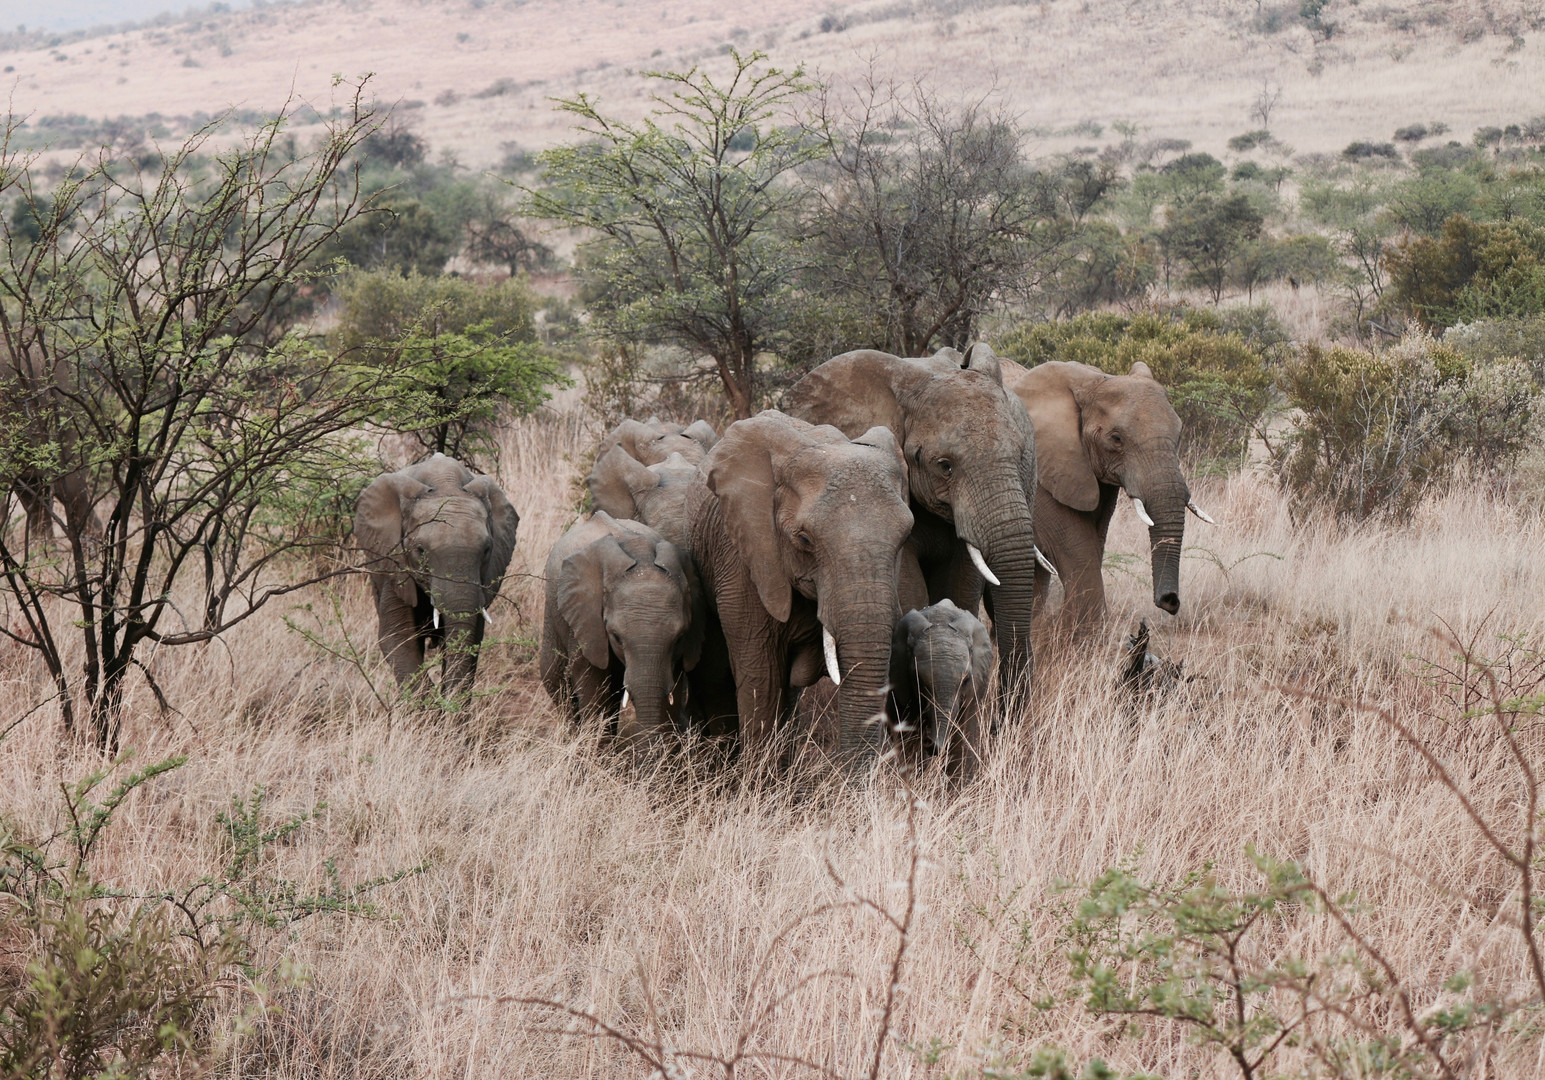 Kenya_Safari_Elephants-1.jpg